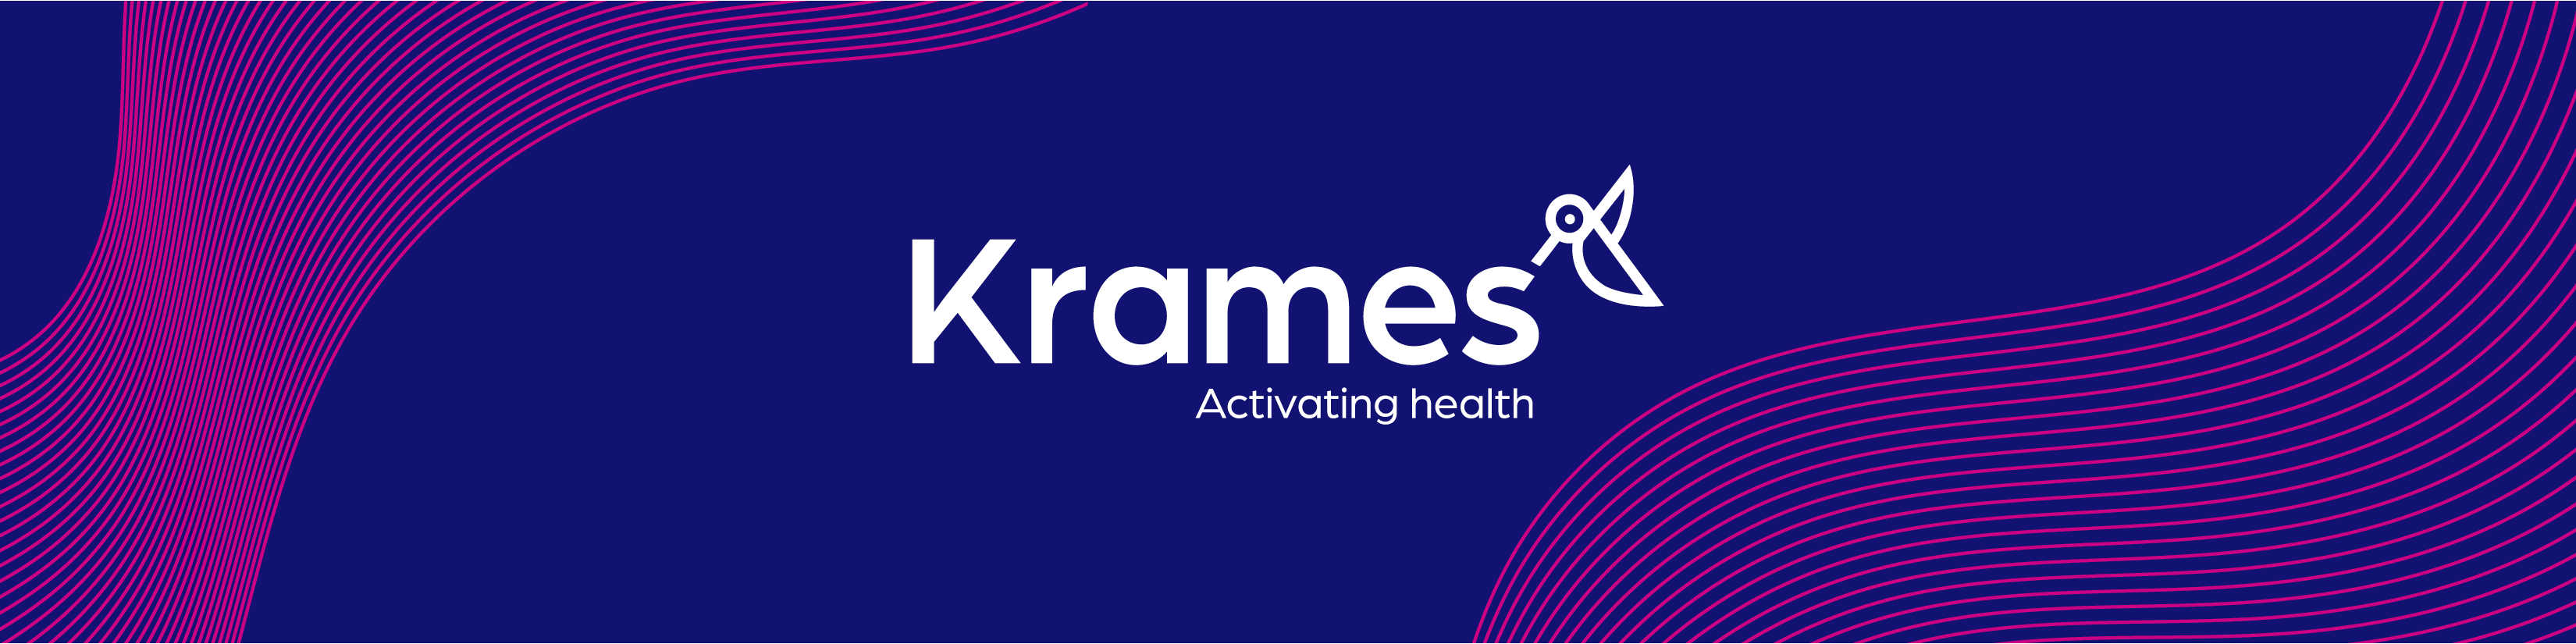 Krames_CoverImagesForEmployees_1584x396_Link_FNL-1-1